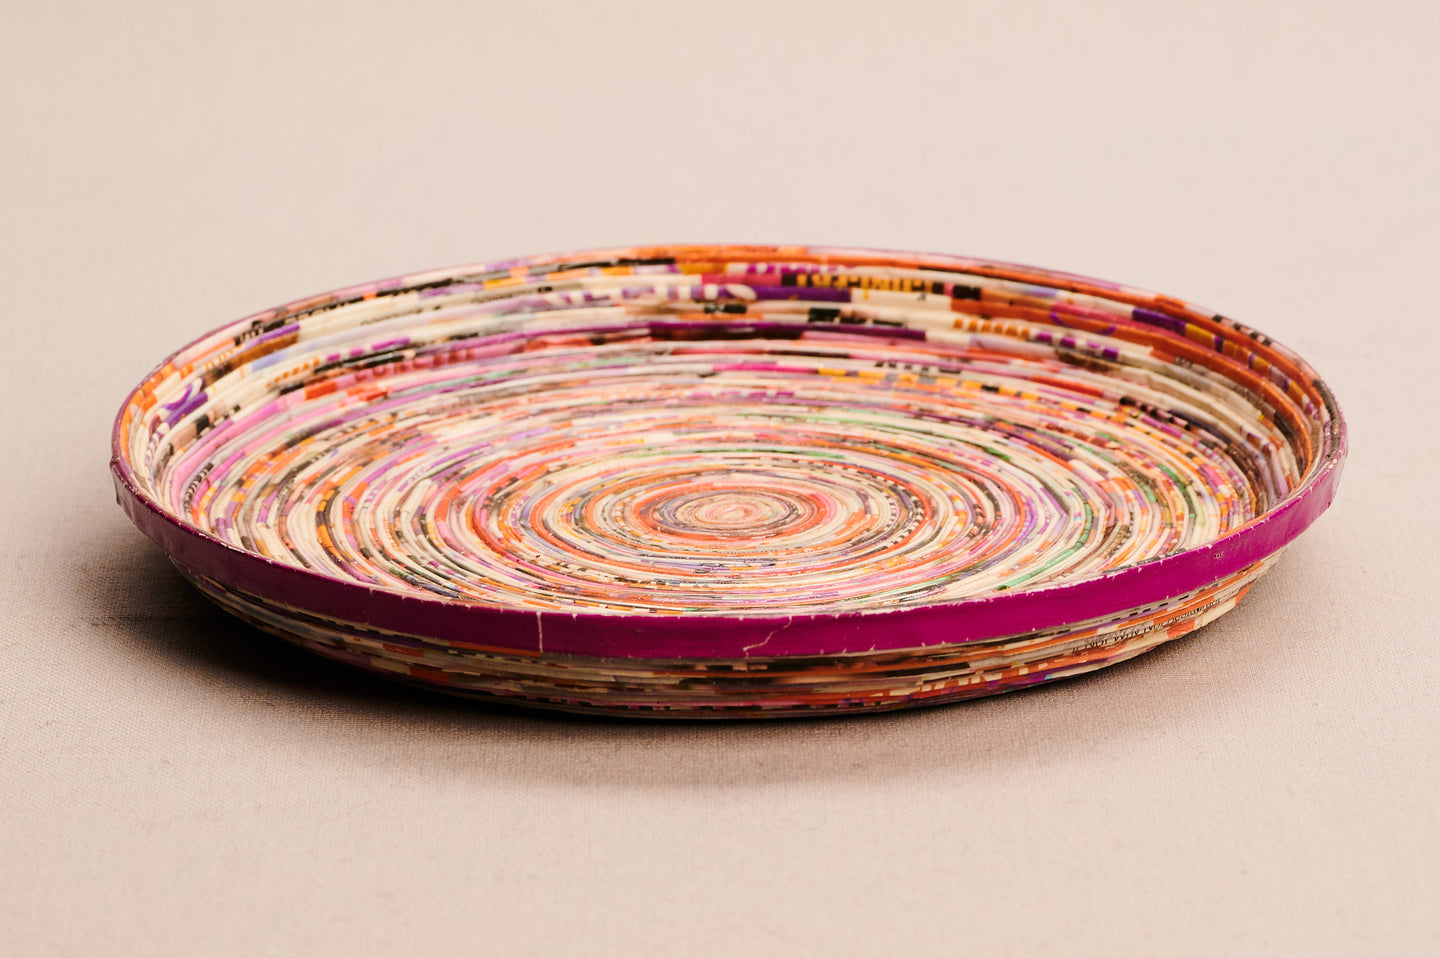 Medium-sized decorative tray made of recycled paper